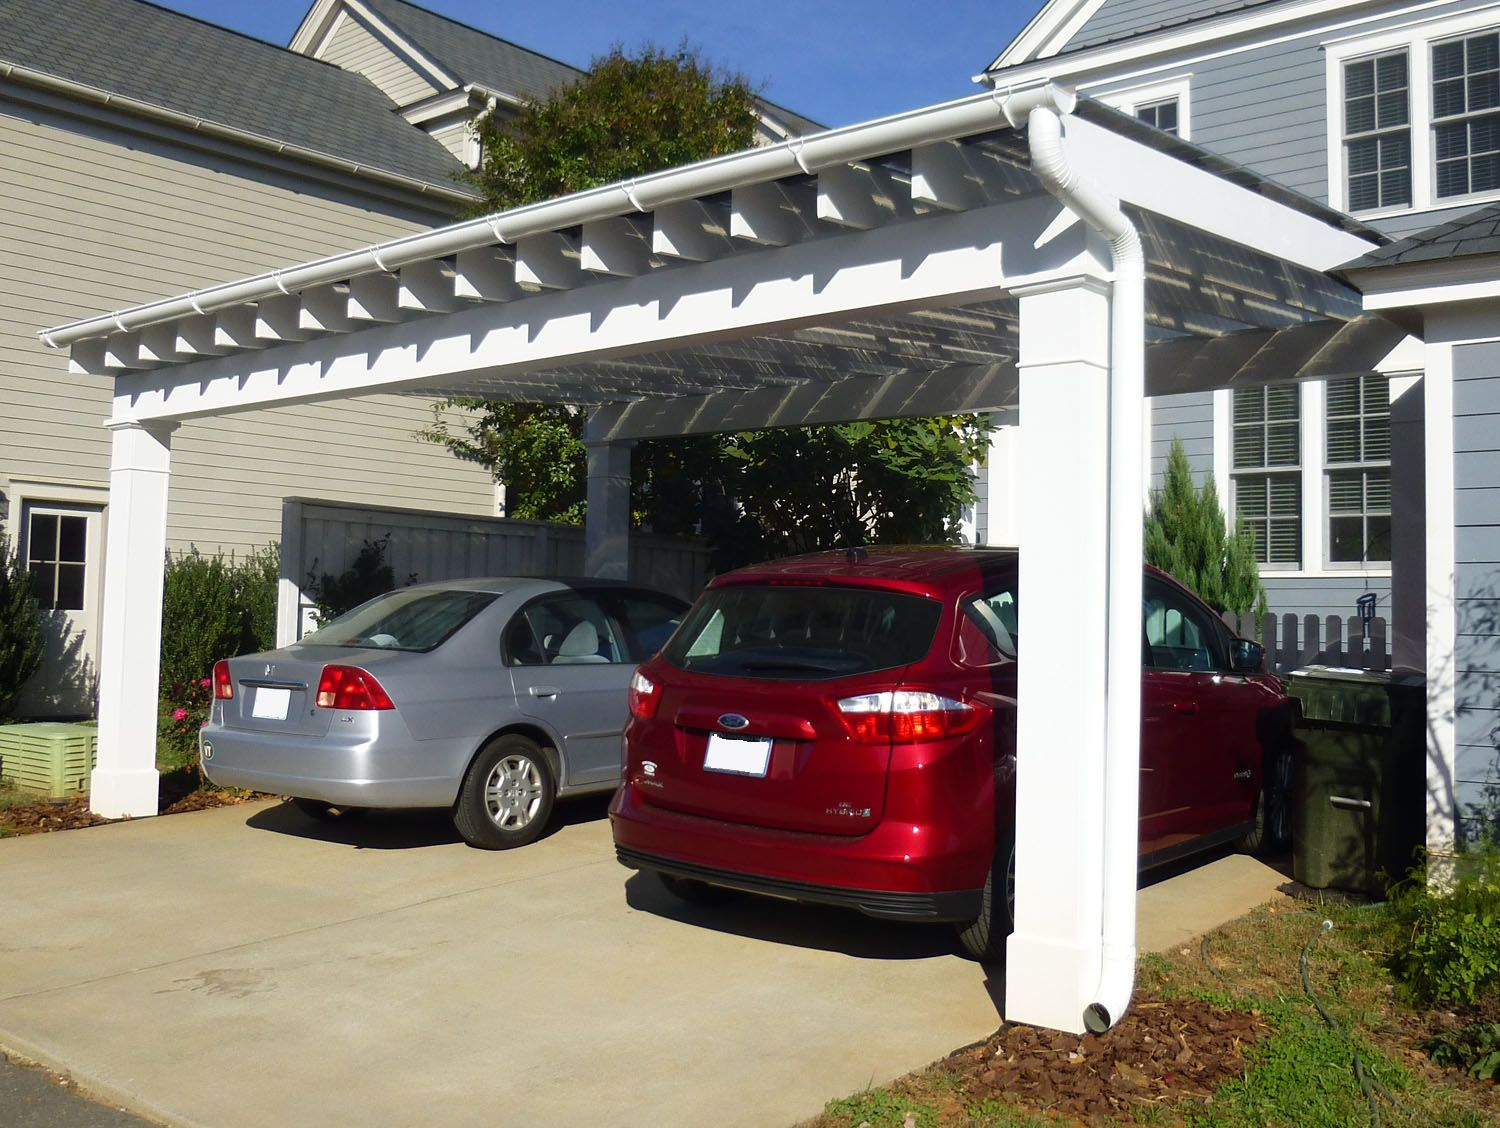 Solar Carport Finished And Commissioned Solar And Green